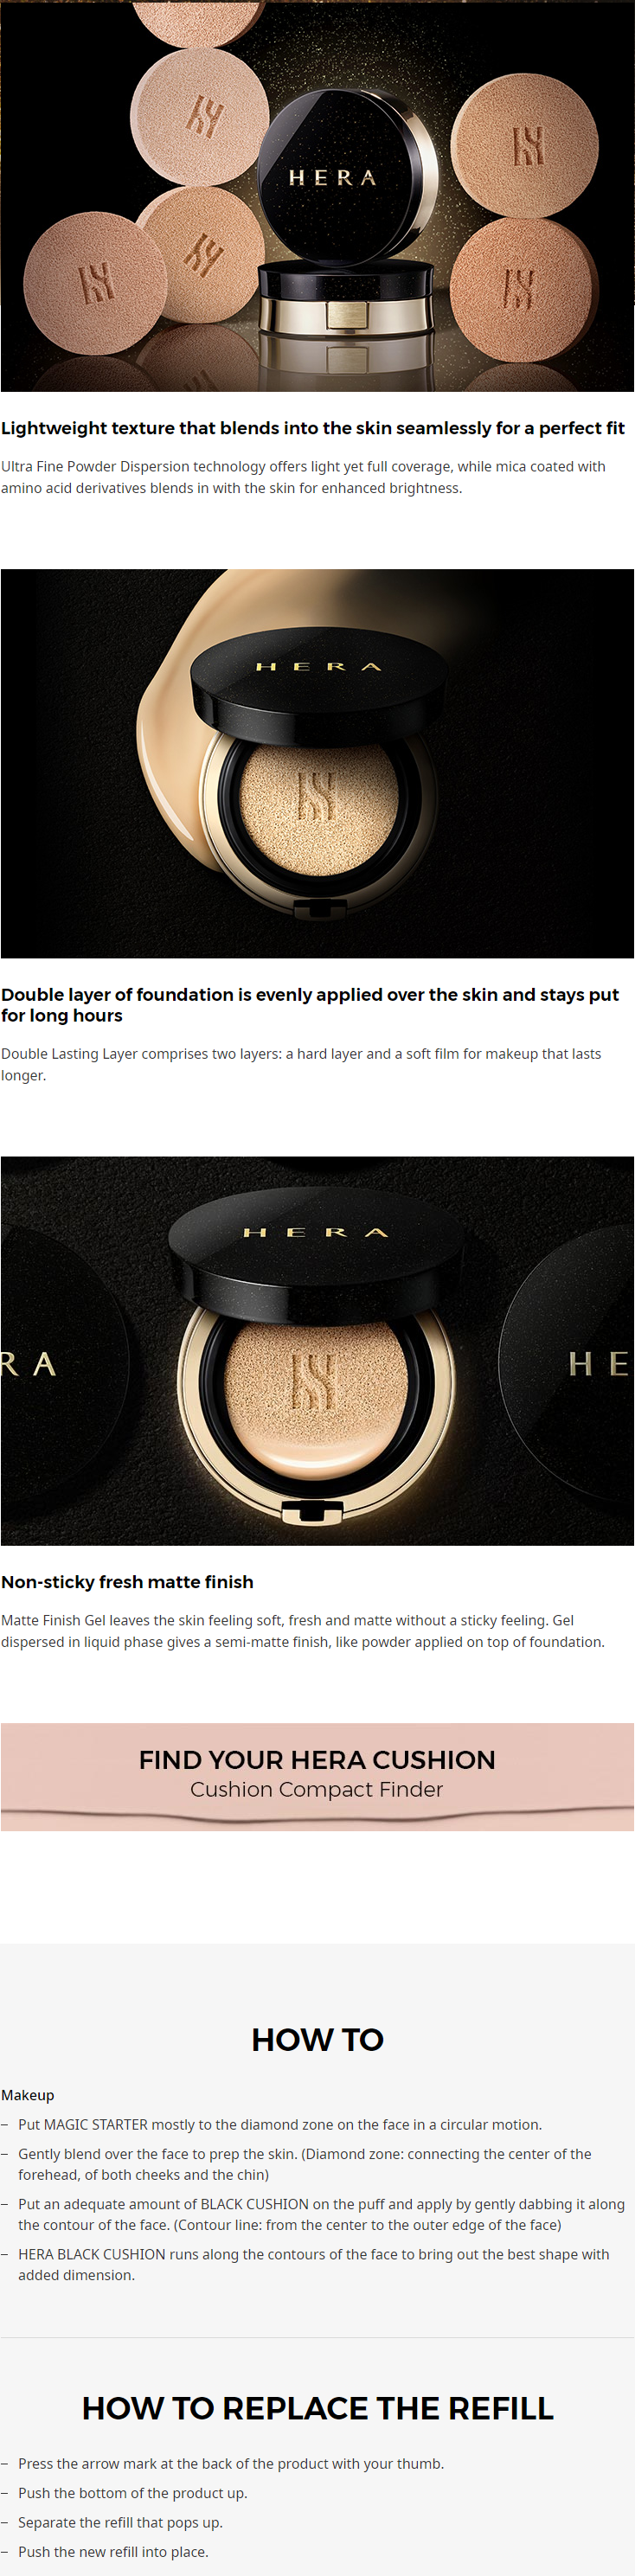 Hera Black Cushion SPF34/PA++ #21 Vanilla (15g x 2)